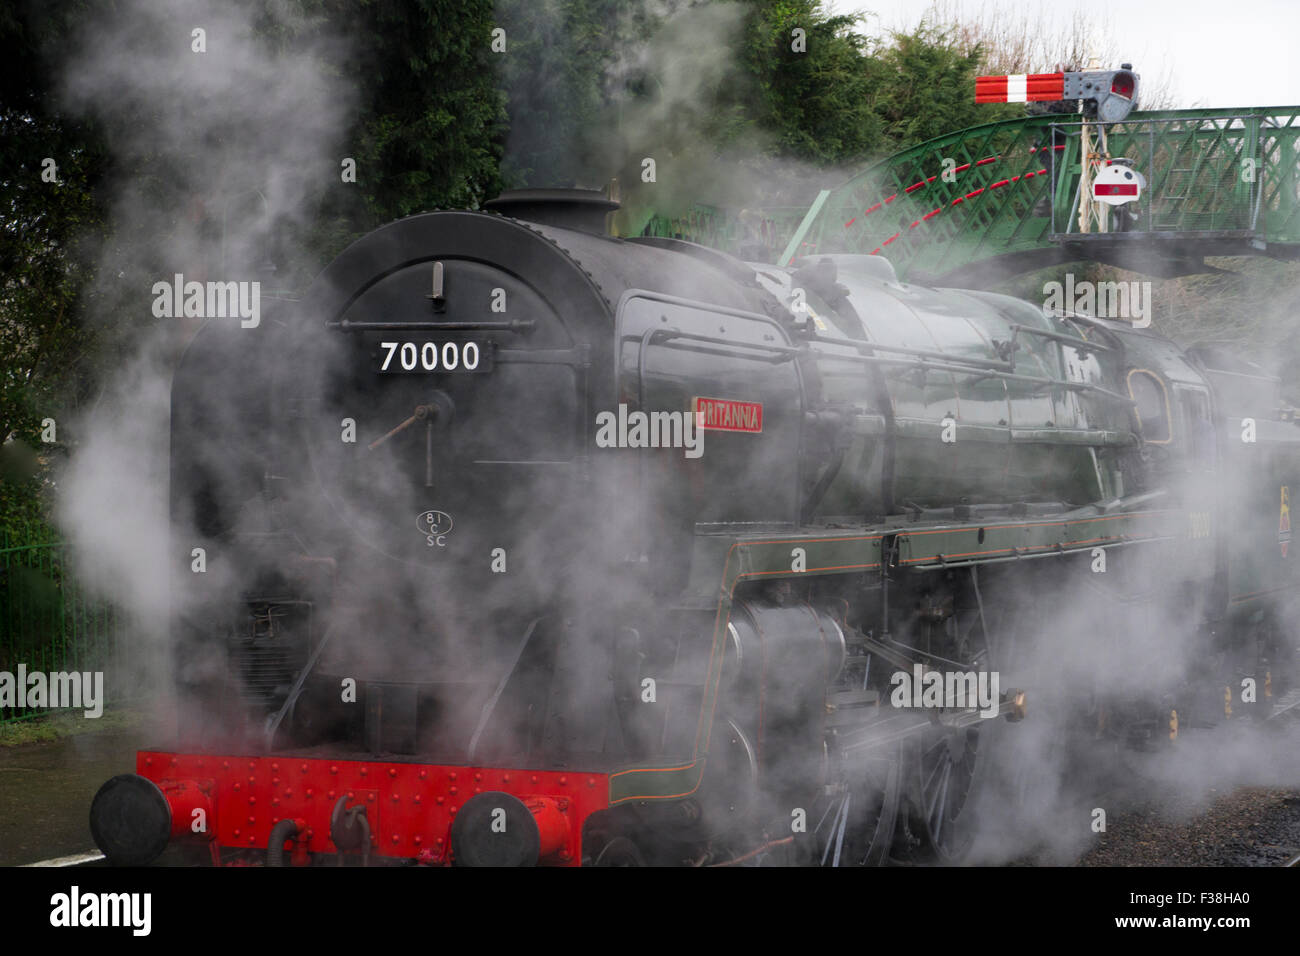 "BR Standard Class 7 Steam Locomotive number 70000 "" Britannia "" at Alresford Station on the Mid Hants Railway during - Stock Image"